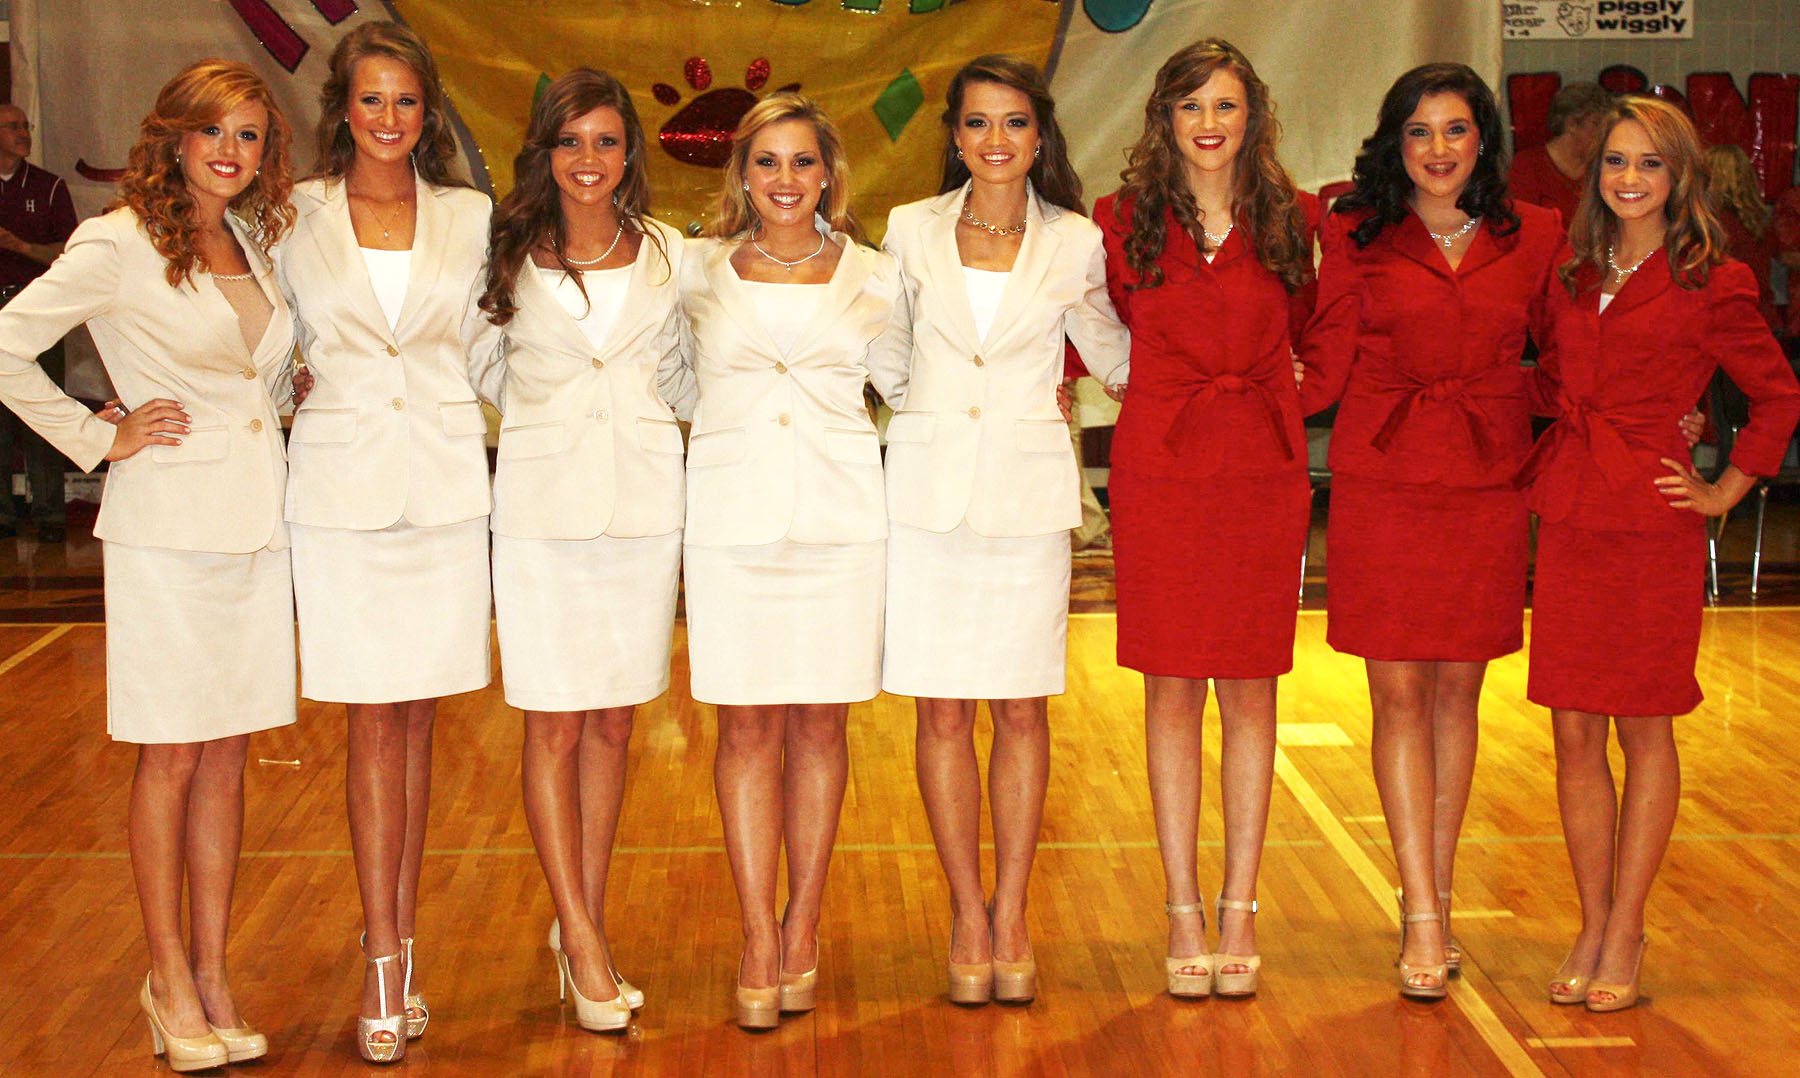 HHS Homecoming Court By HBTV Friday, October 12, 2012 | 3:10 PM